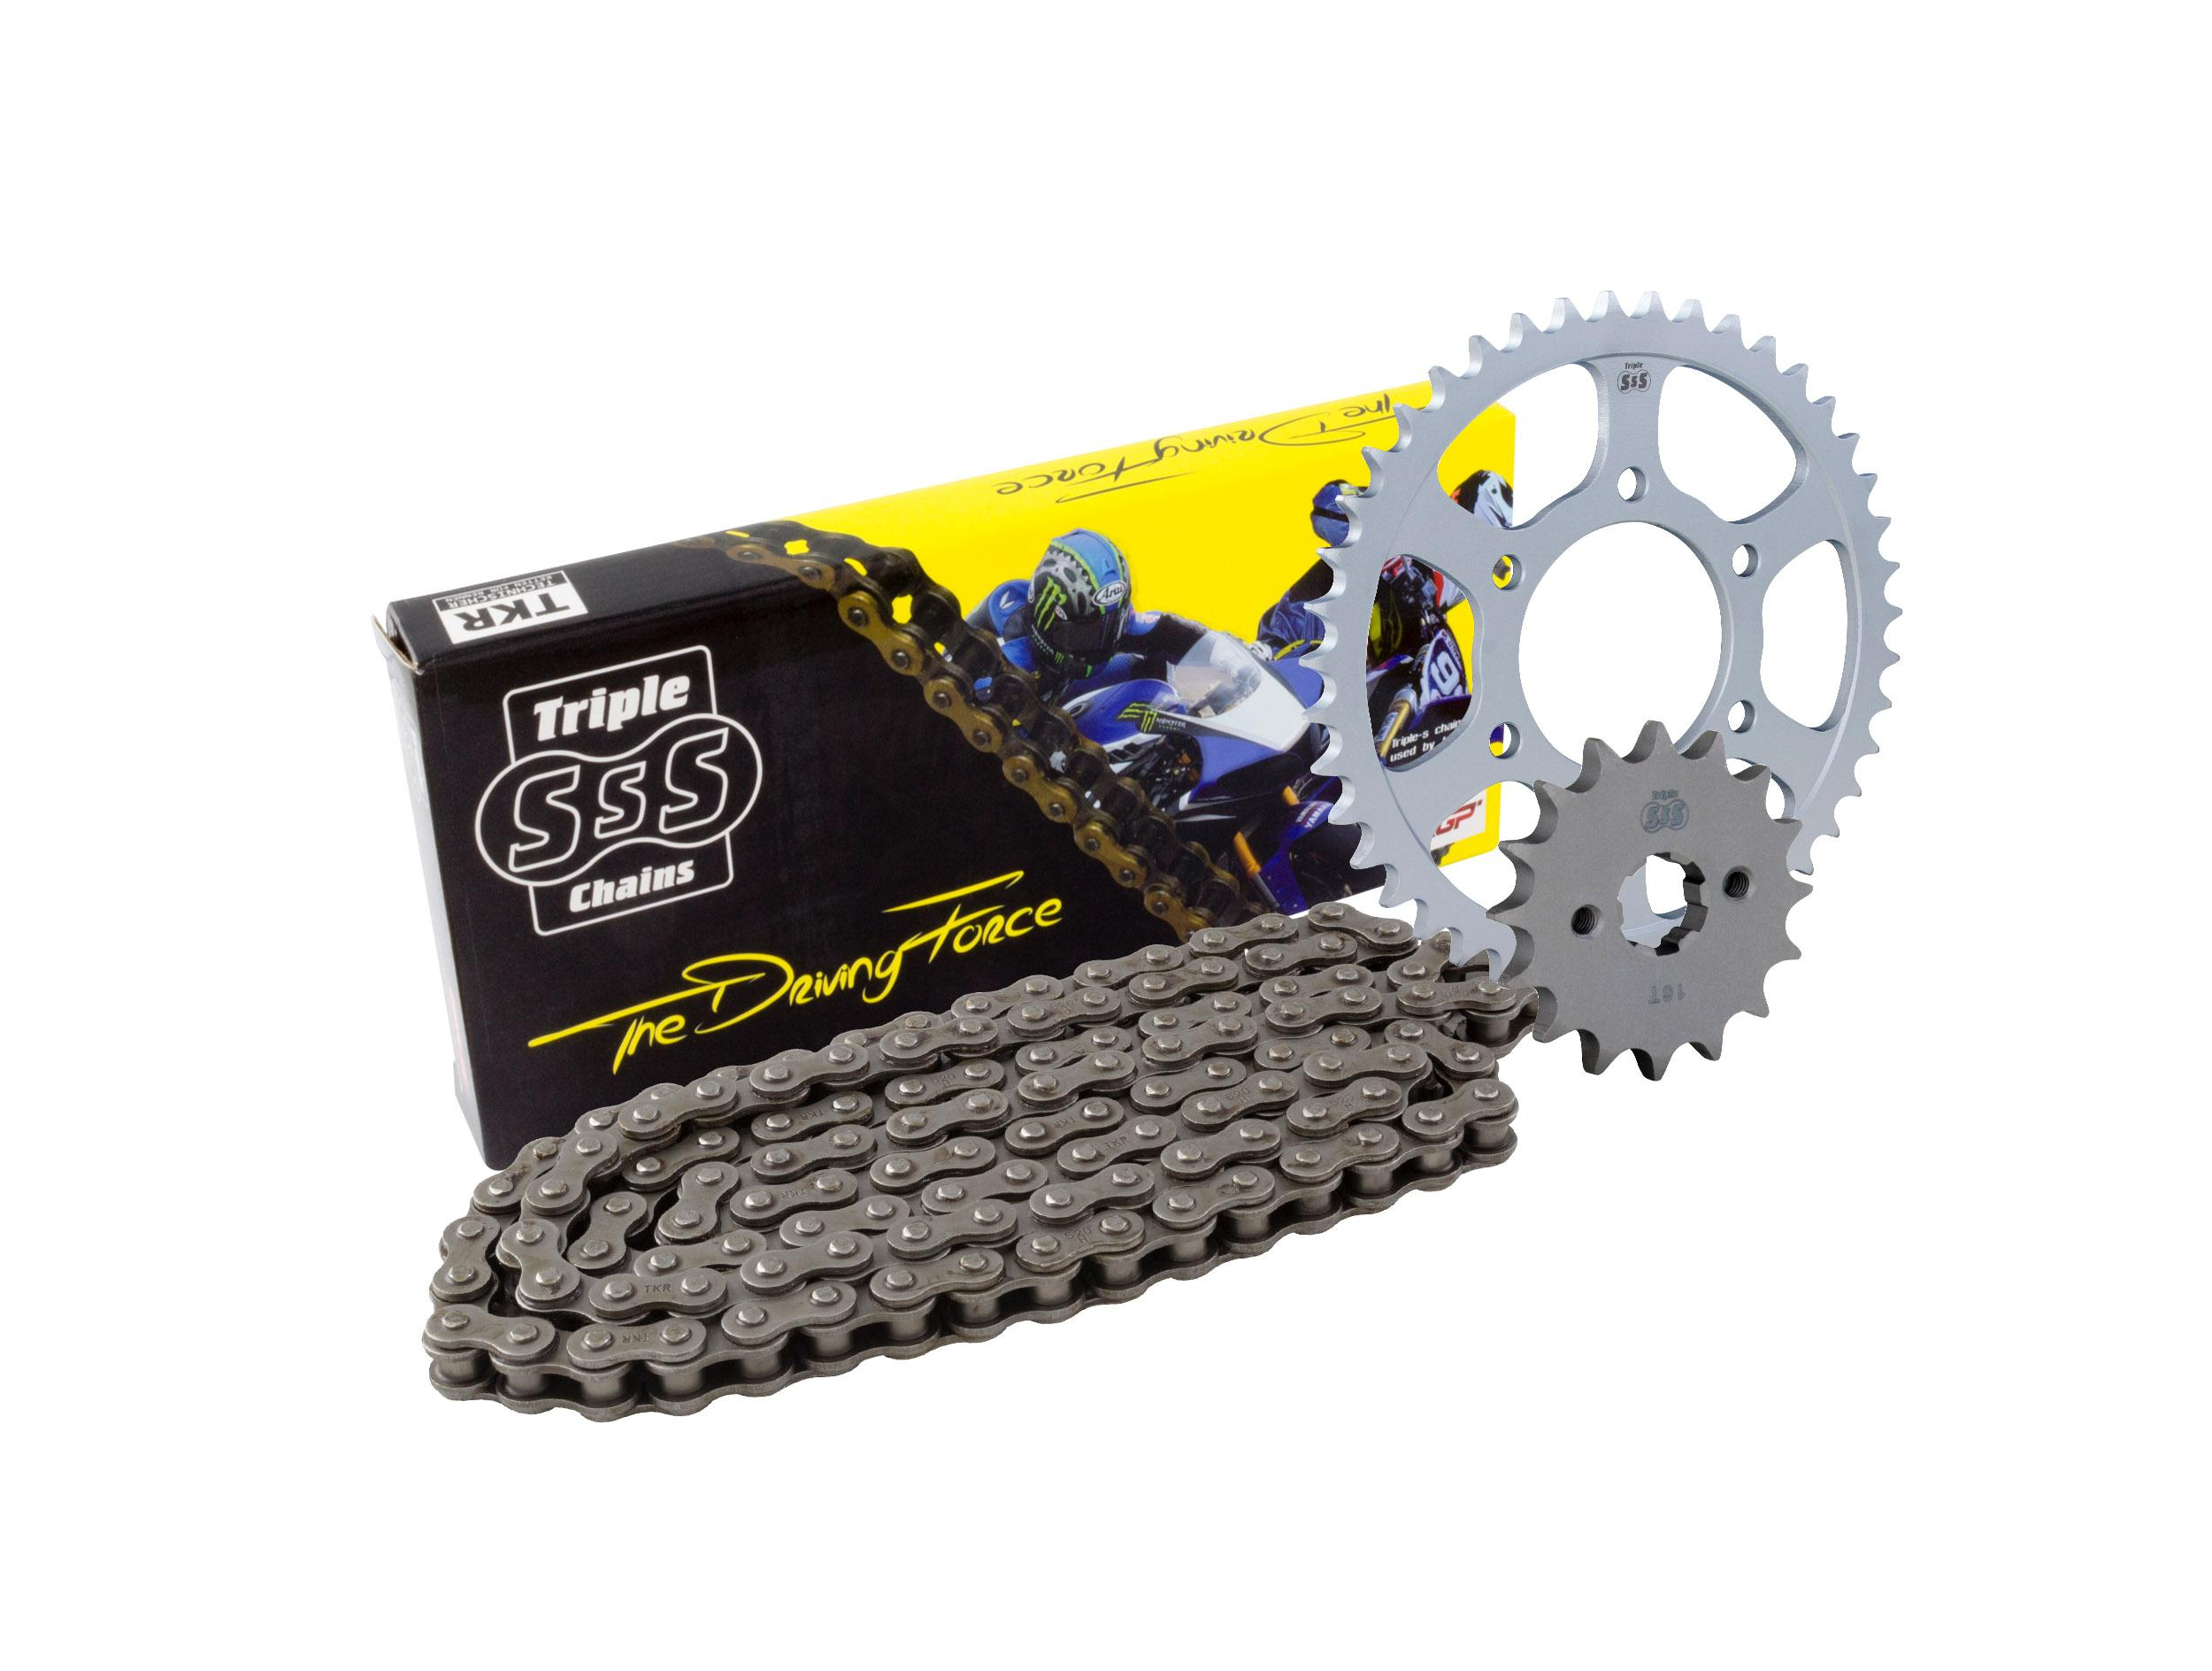 Aprilia 125 RS Extrema 04-05 Chain & Sprocket Kit: 17T Front, 40T Rear, HD Chain 520H 108Link